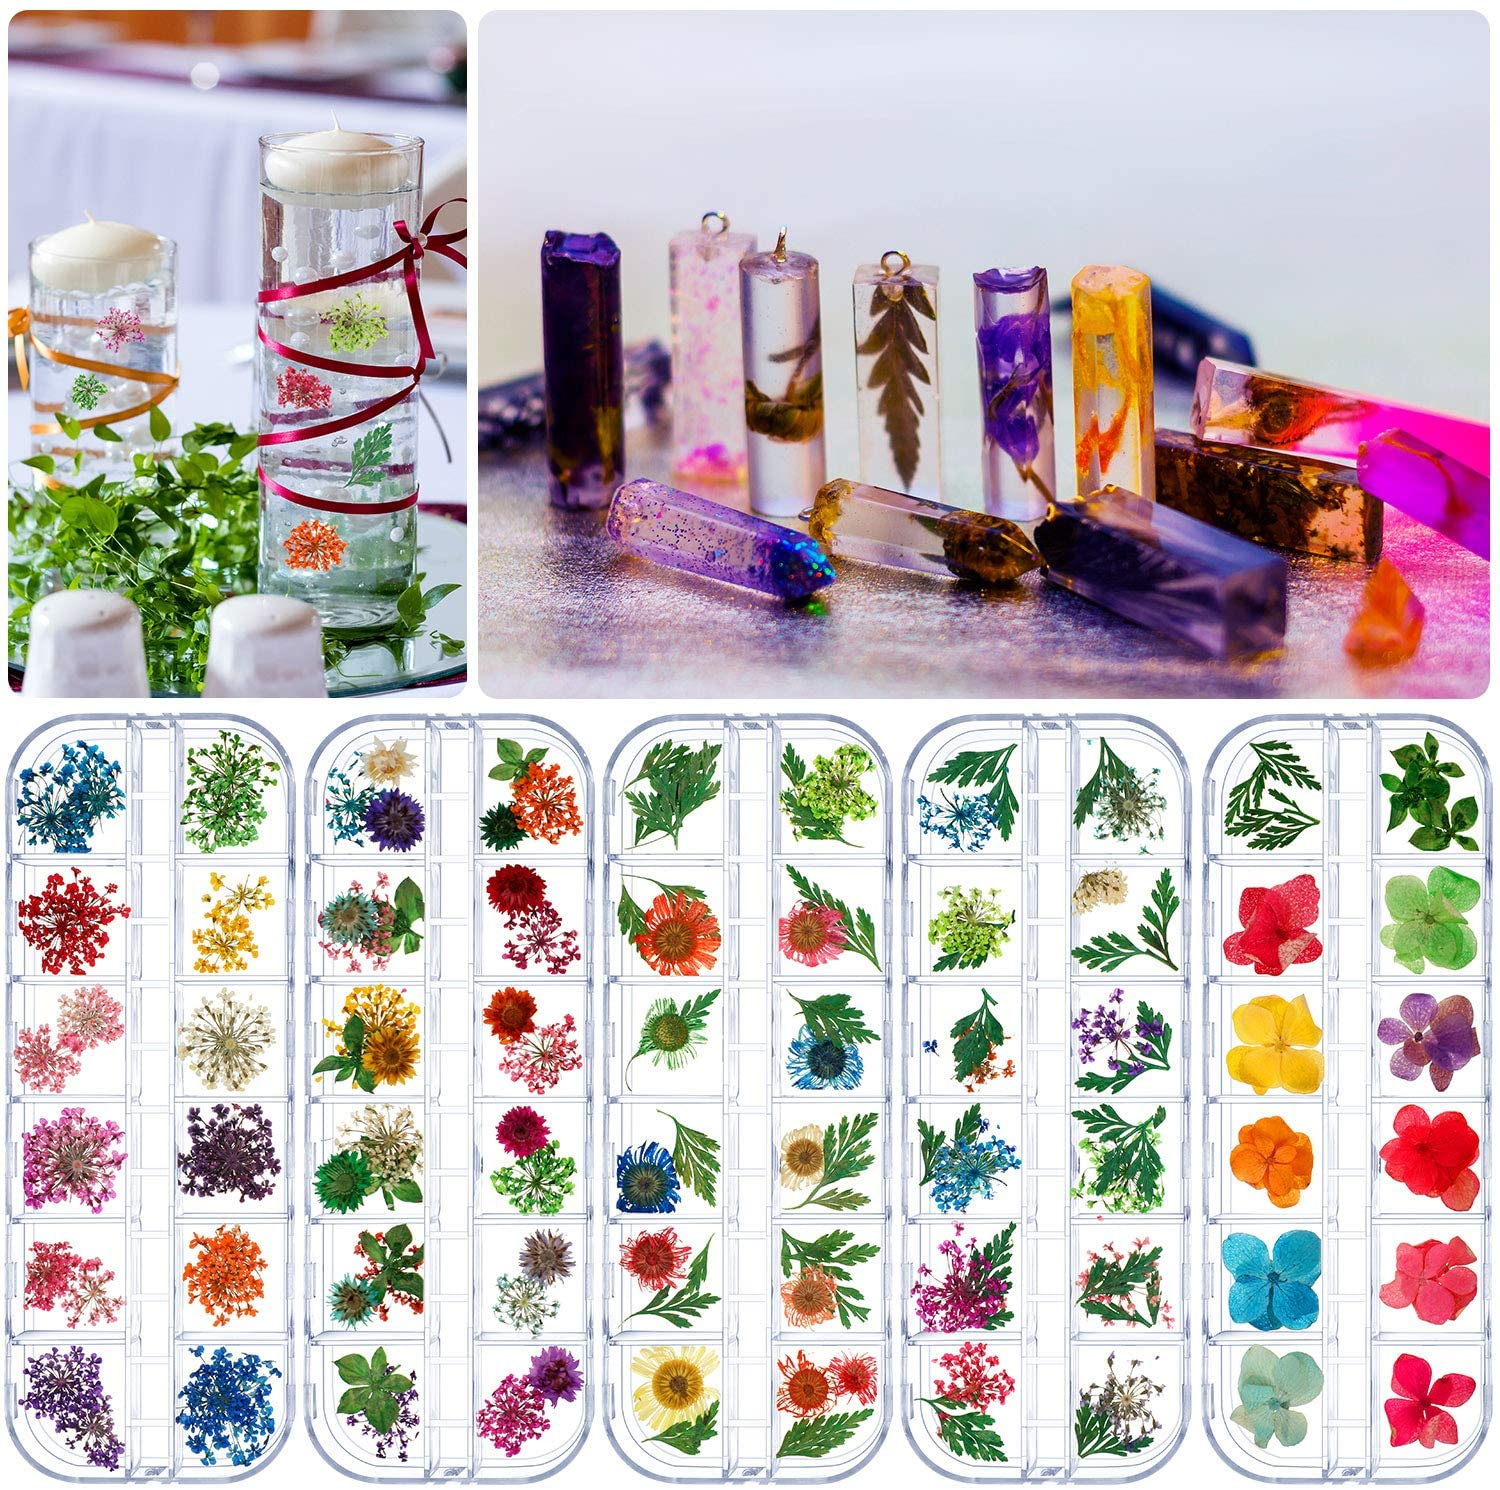 5 Boxes Natural Dried Flowers Real Dry Flowers Nail Dried Flowers for Resin Jewelry, Candle Making, Nail Art, DIY Making Craft